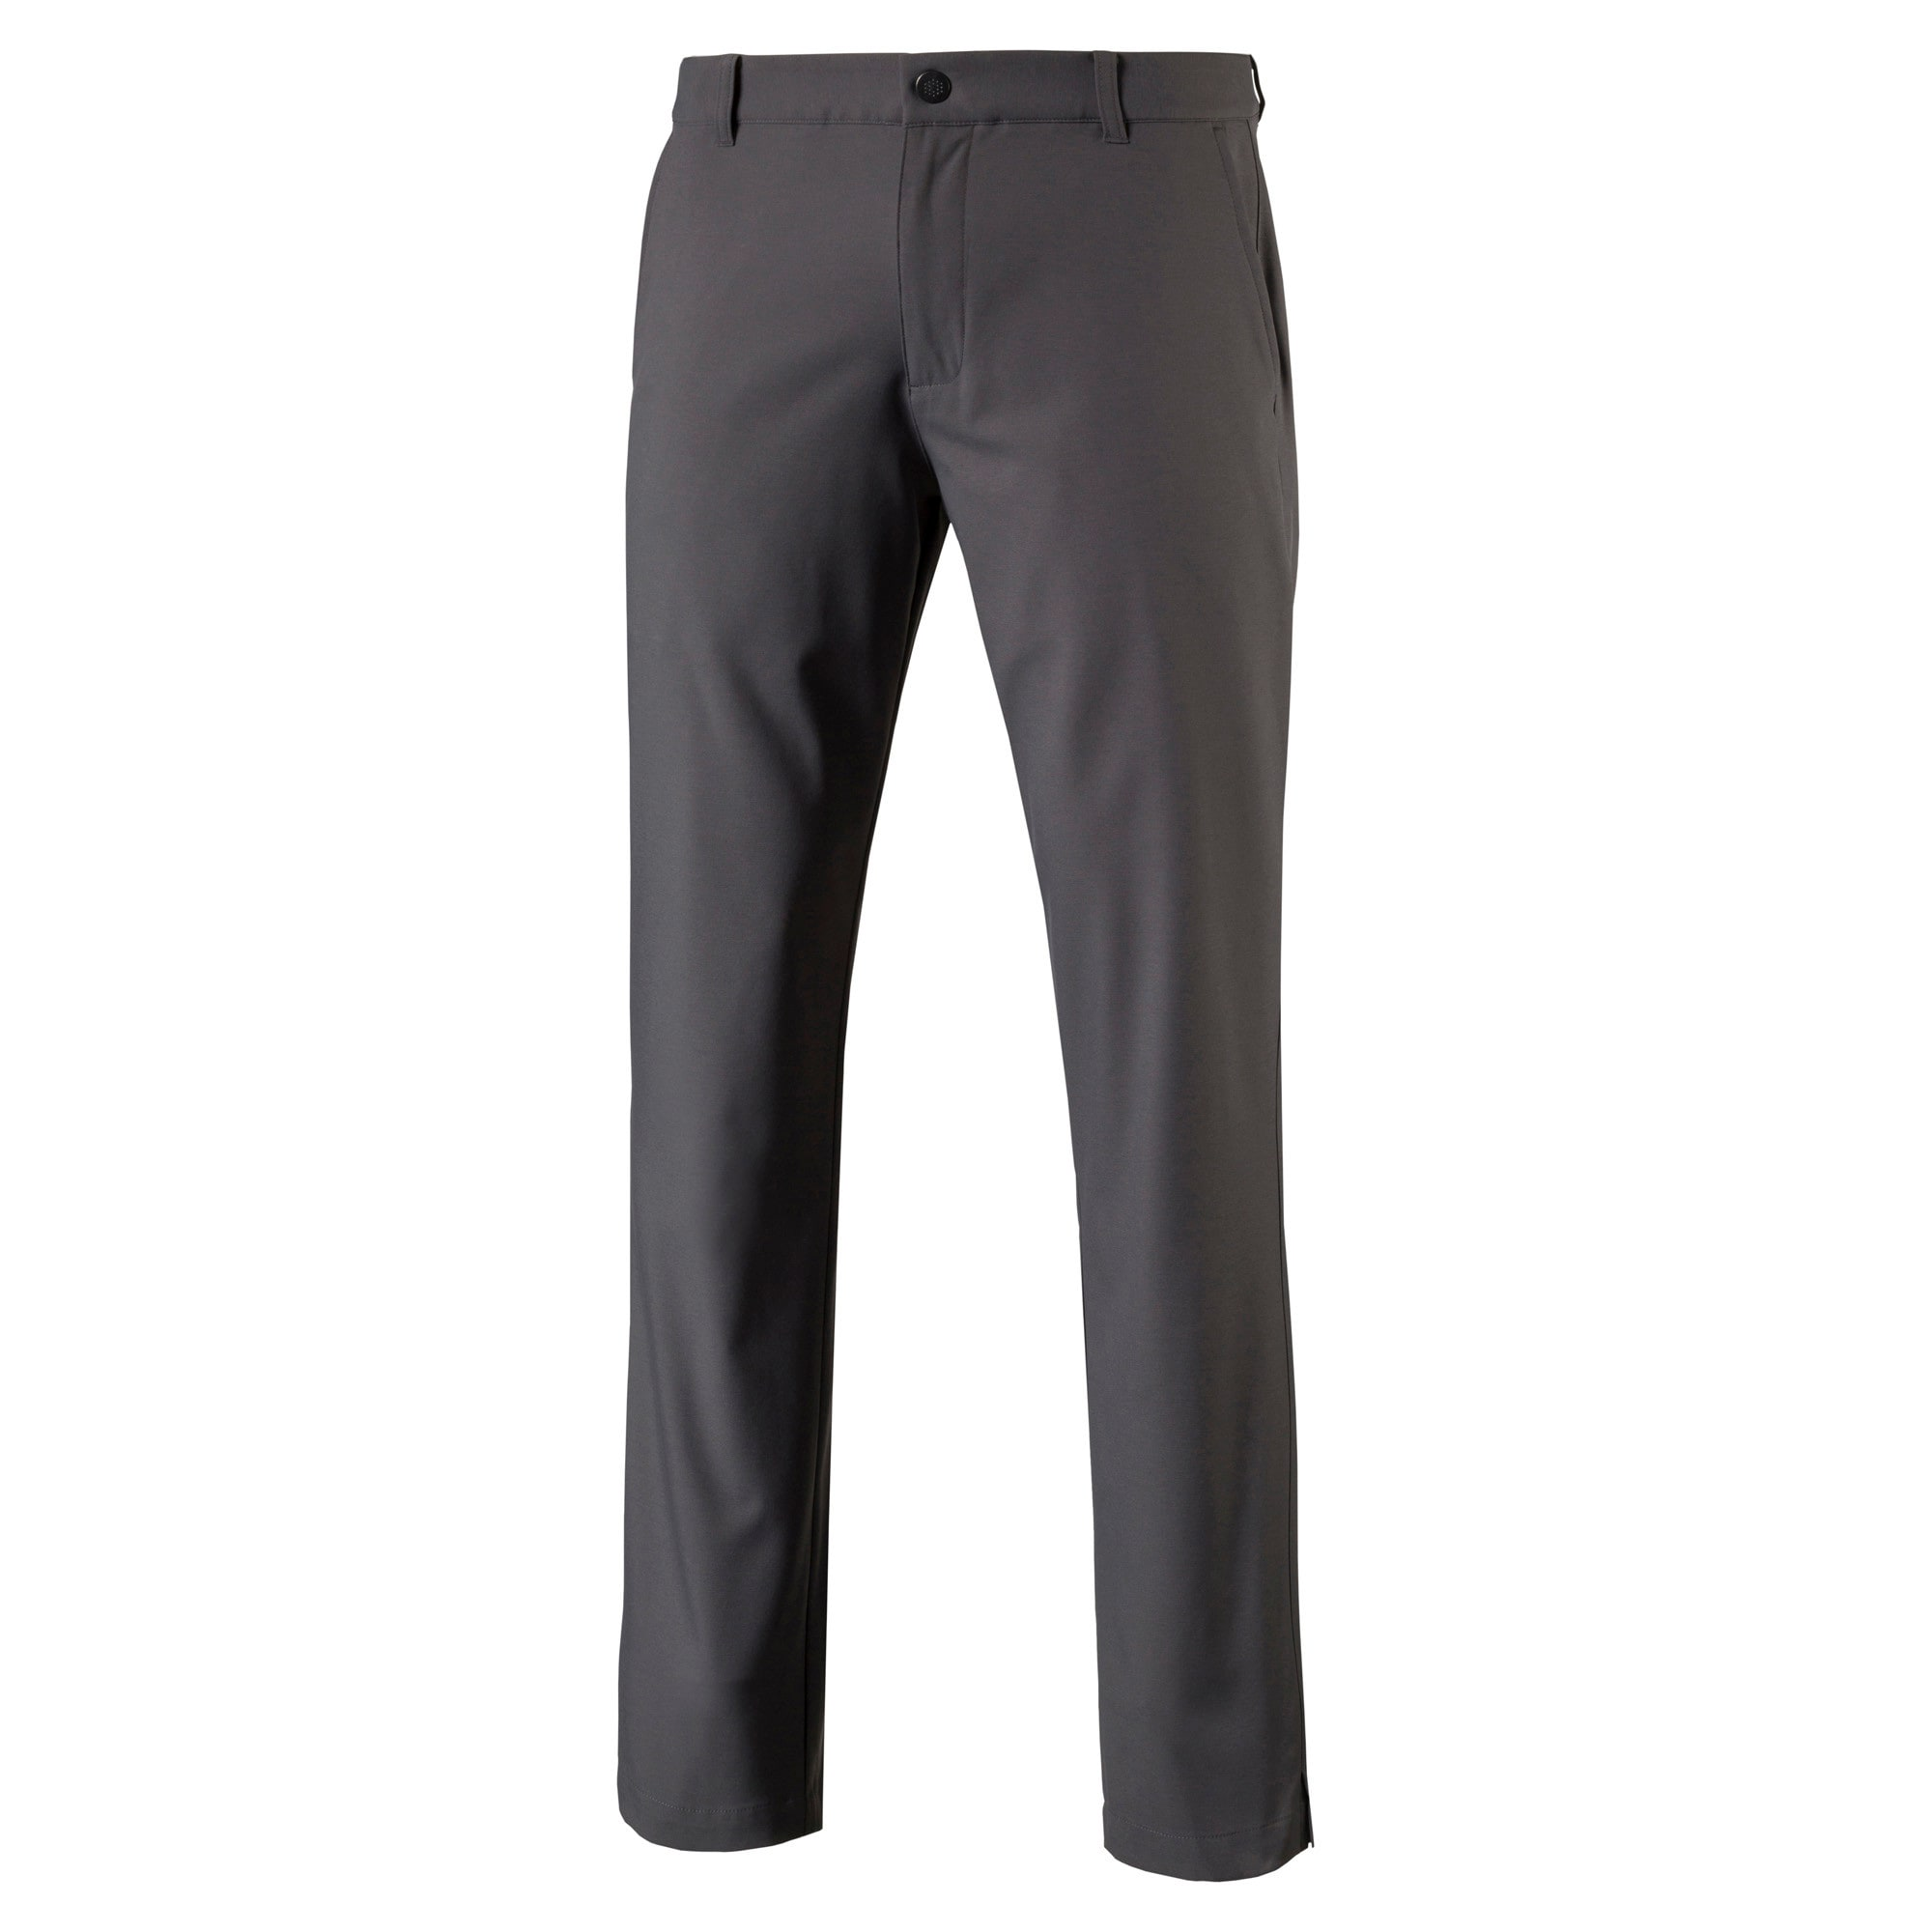 Thumbnail 1 of Stretch Pounce Pants, QUIET SHADE, medium